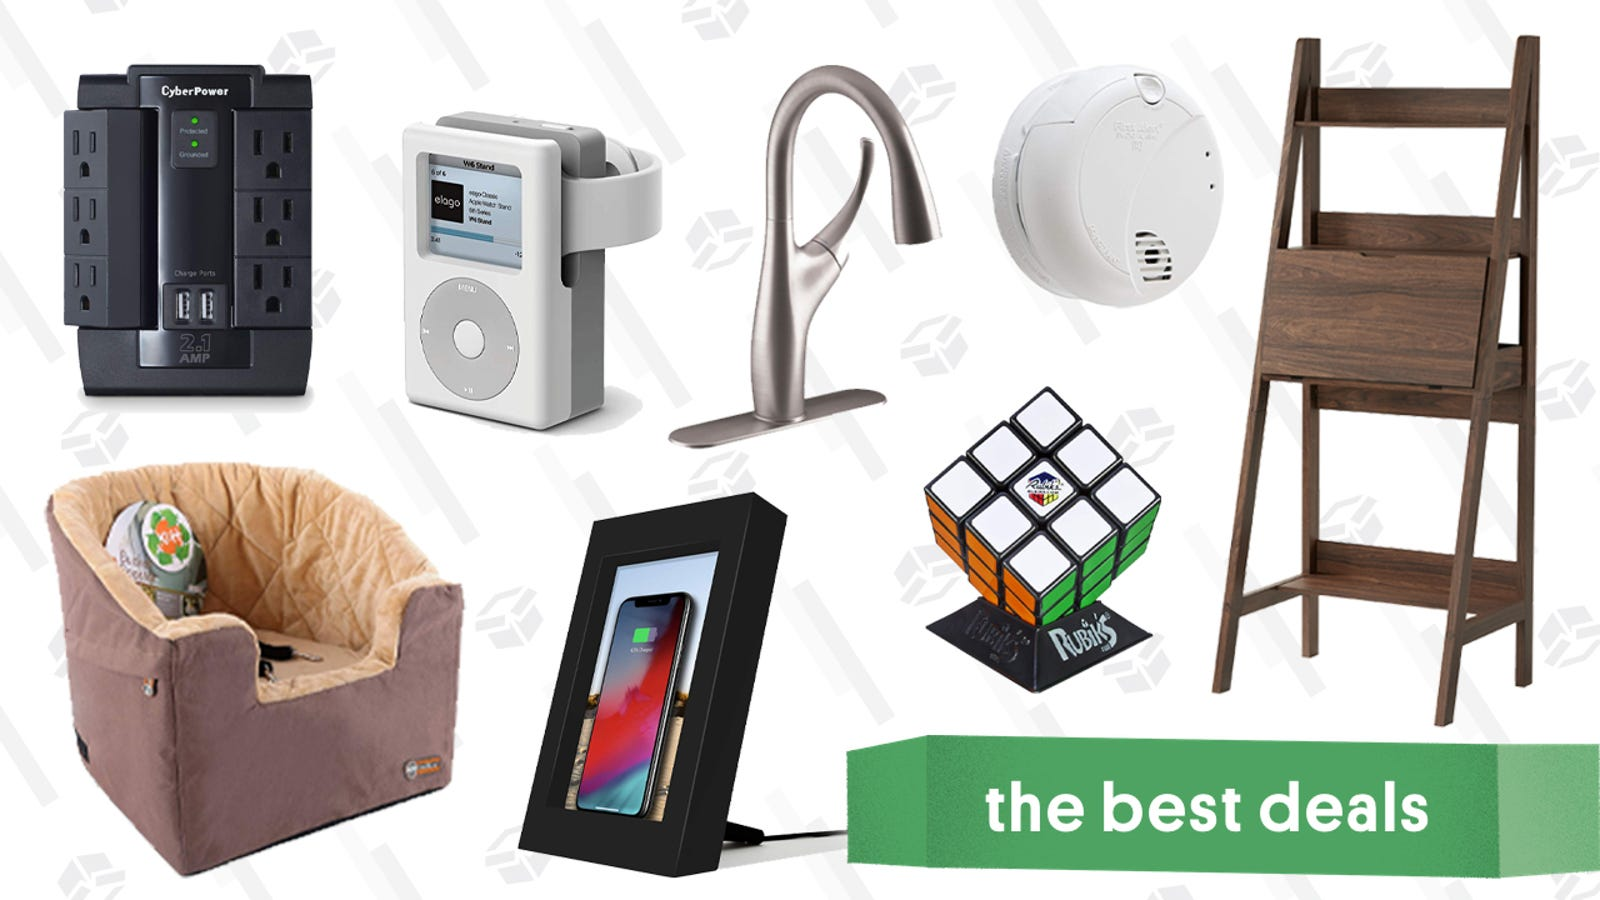 Monday's Best Deals: Samsung 8K TVs, Kohler Fixtures, Rubik's Cube, and More